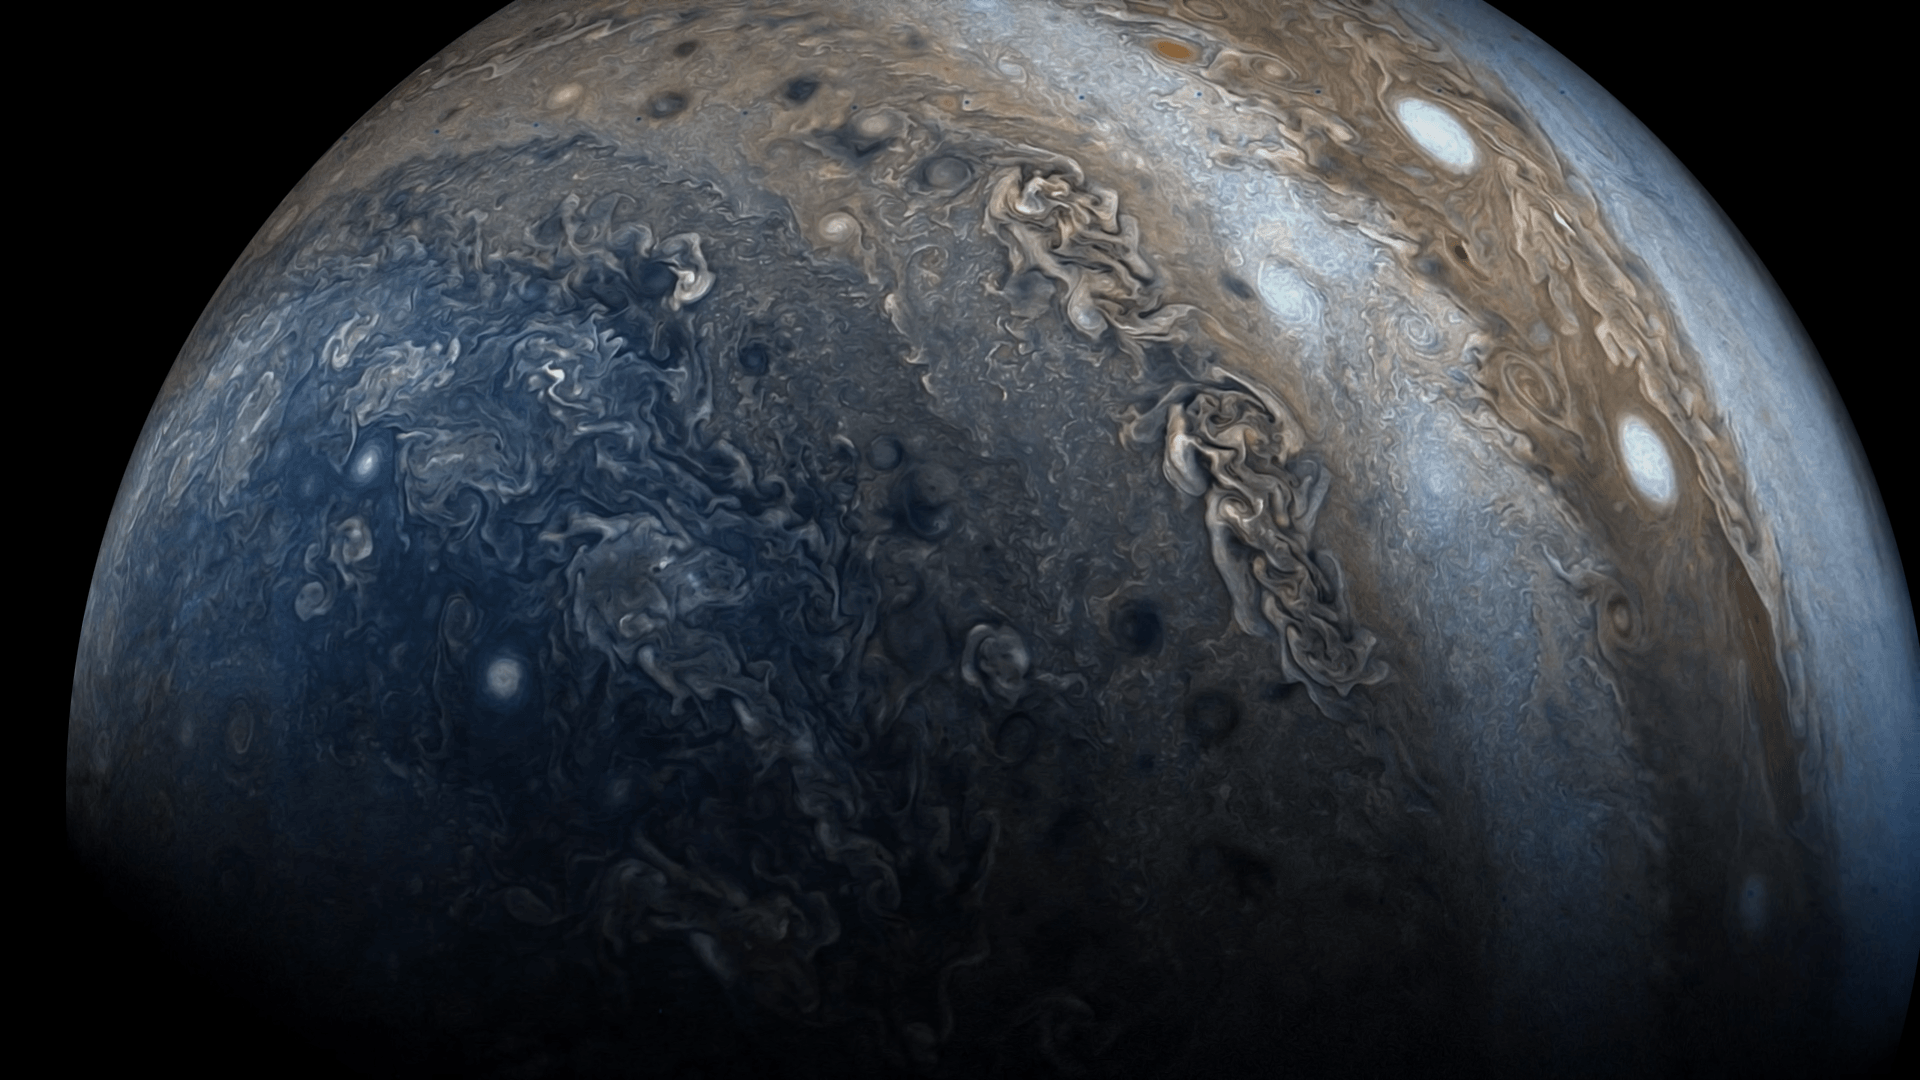 1920x1080 Wallpapers of Jupiter (From the Juno Perijove 06 Flyby) : wallpapers